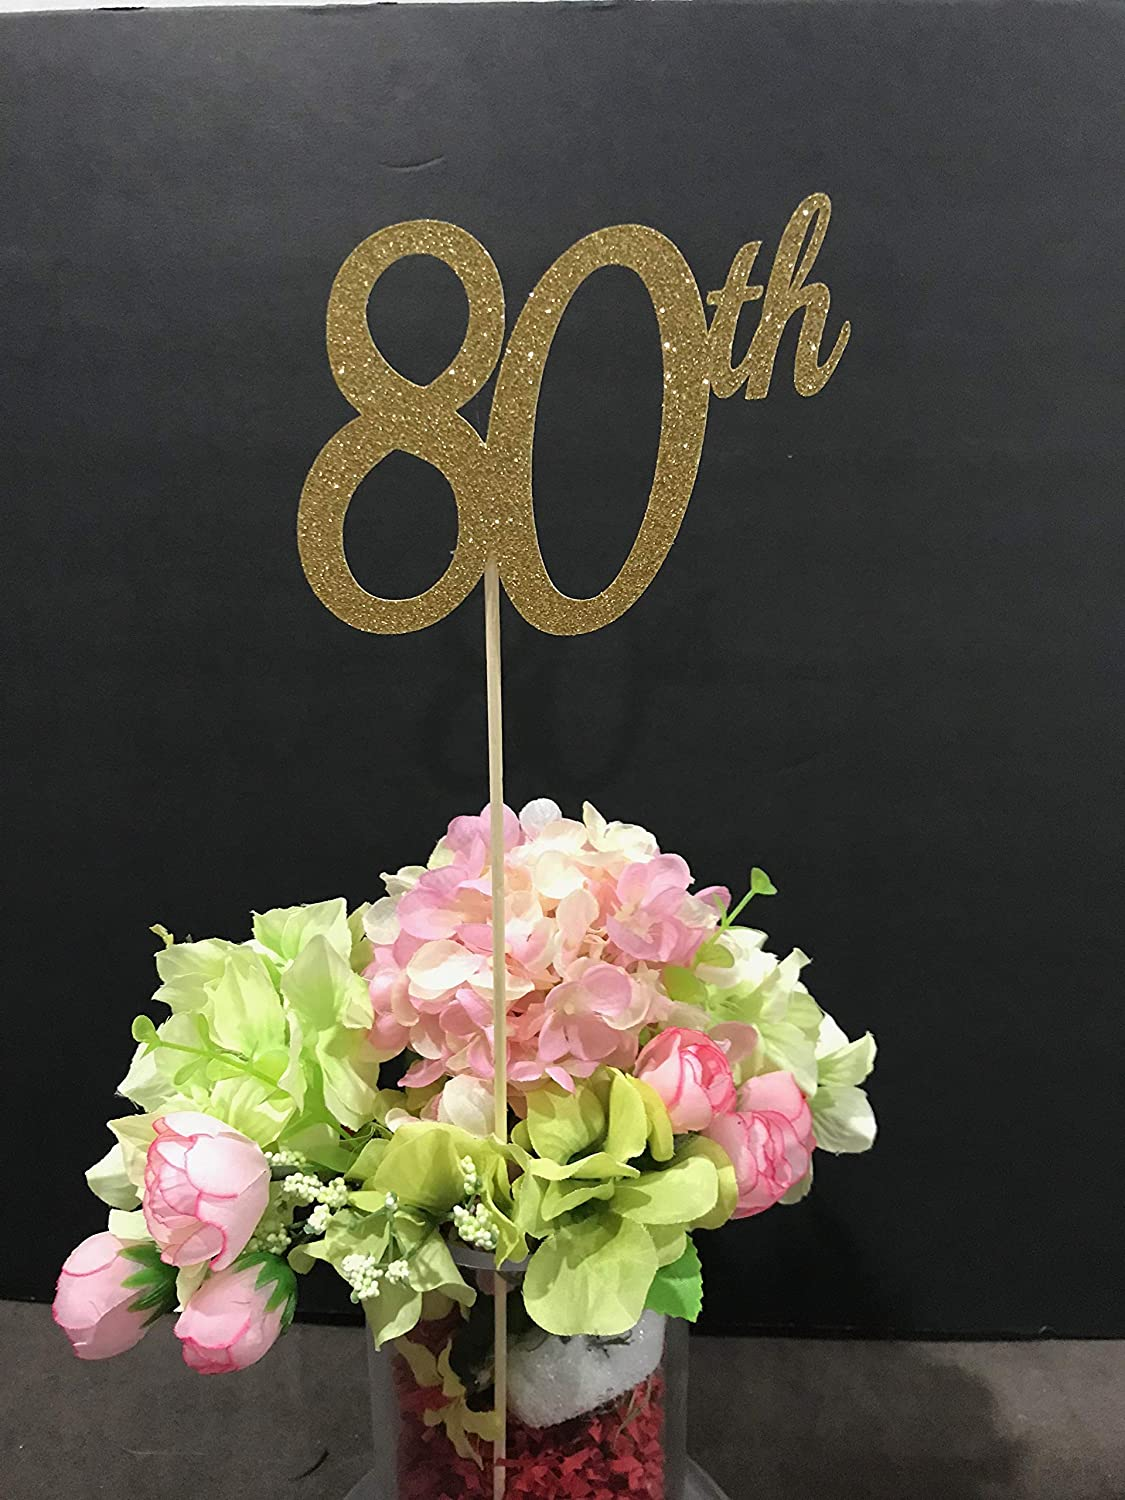 80th Birthday Decorations Centerpiece Sticks Glitter 80 Table Age Anniversary Stick